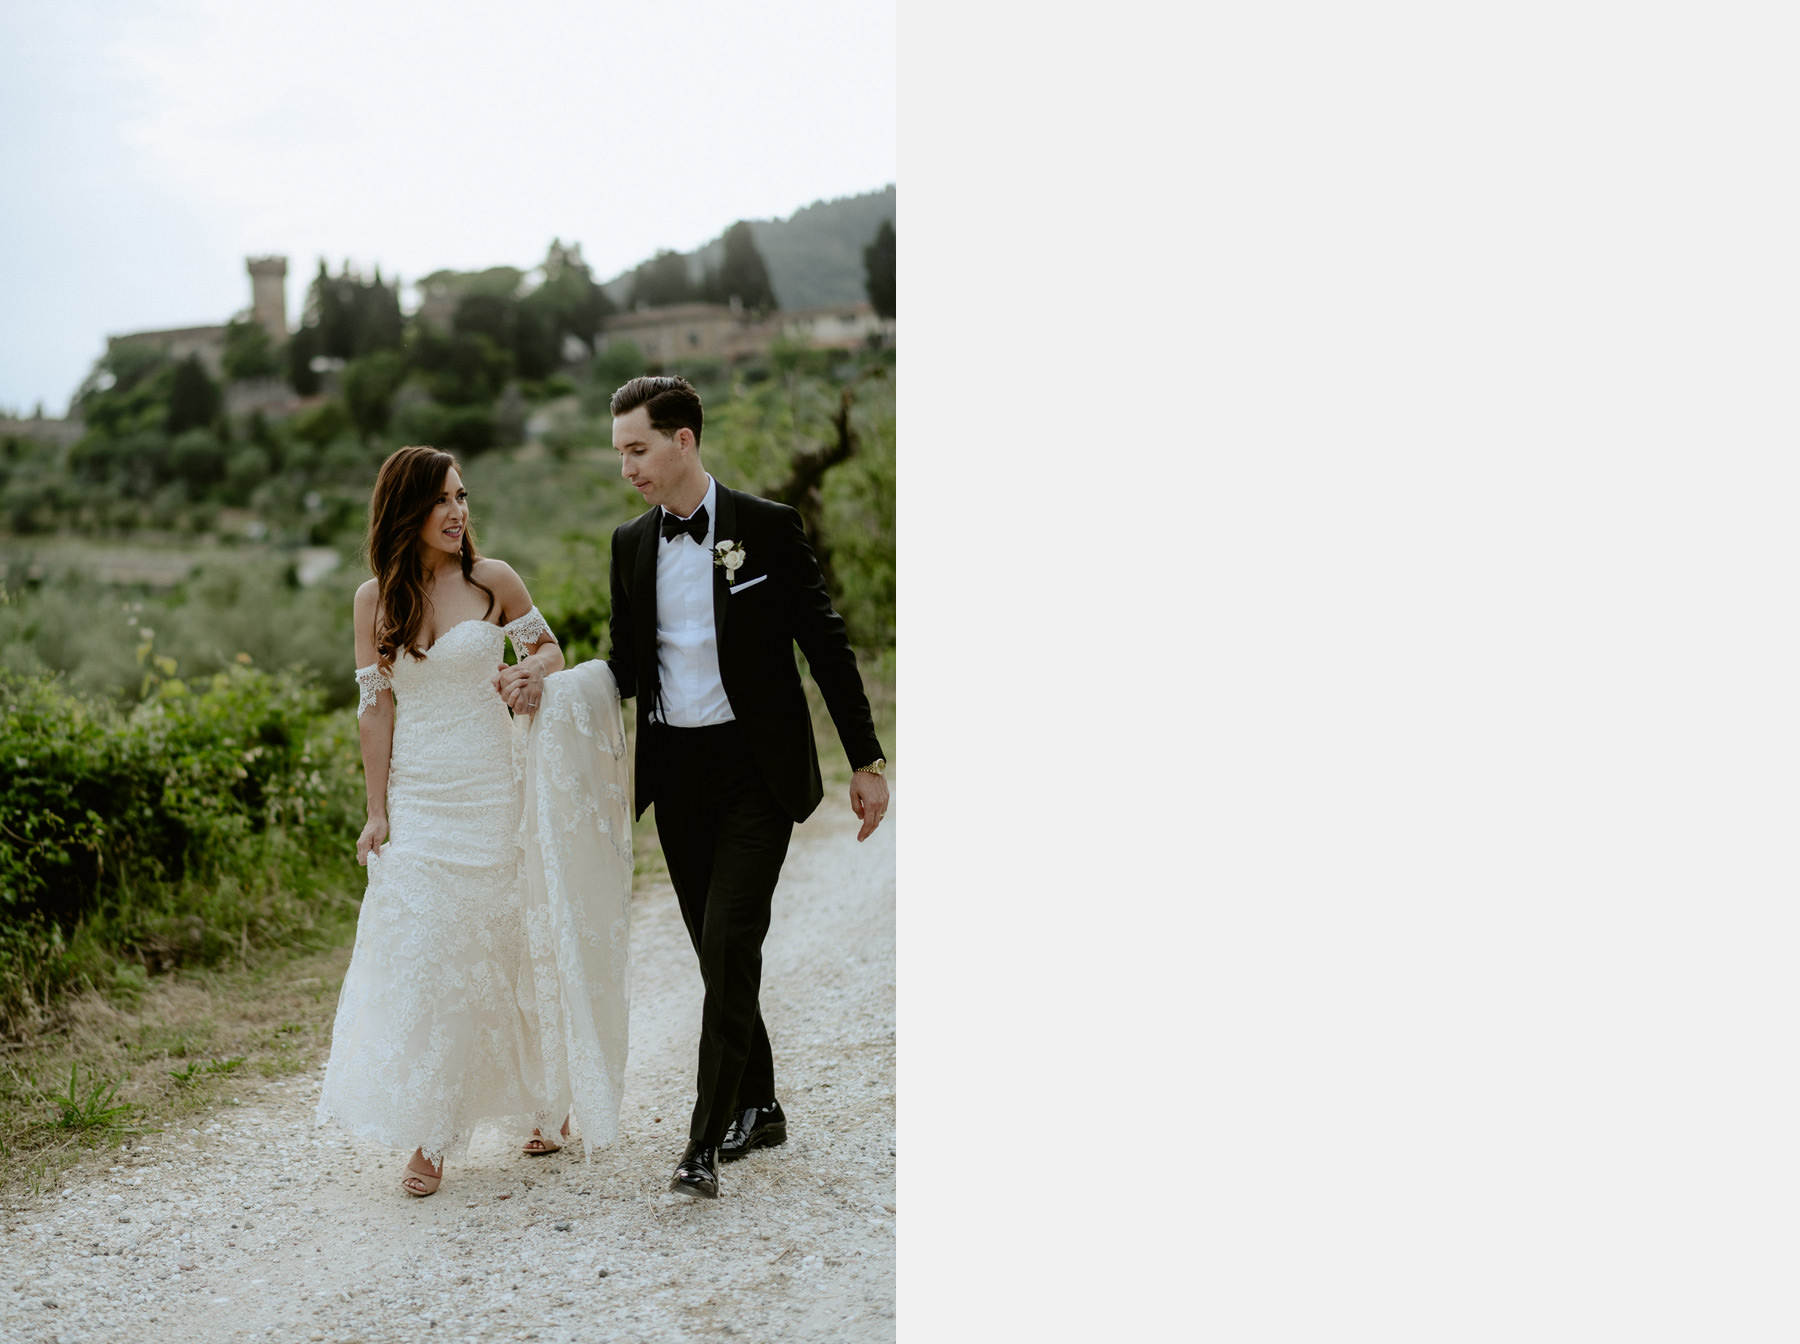 Timeless wedding in Florence Tuscany vincigliata castle romantic